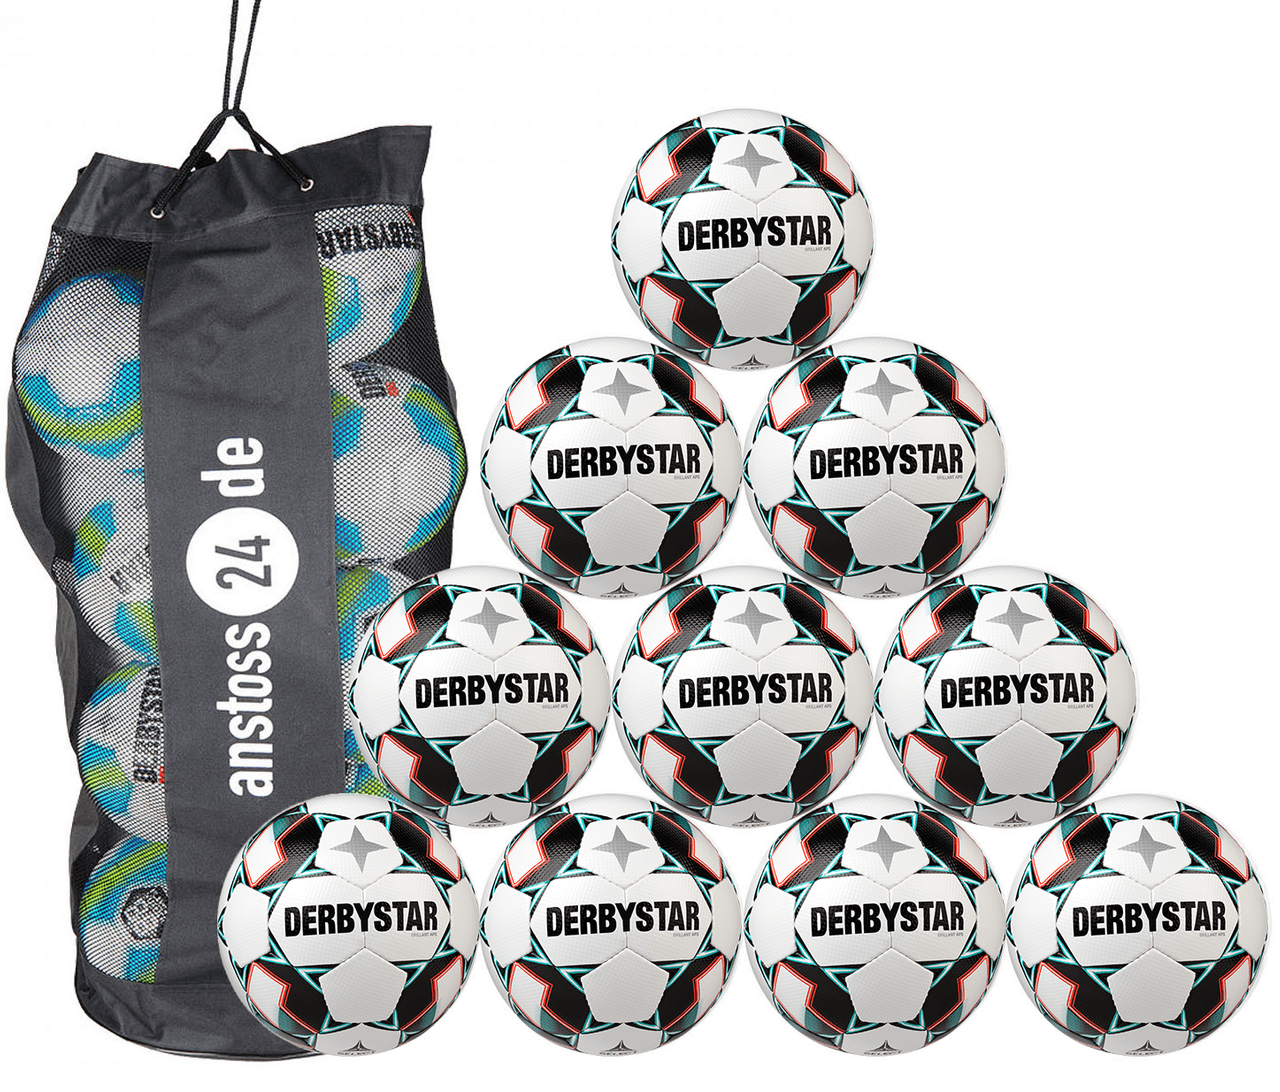 10 x DERBYSTAR match ball - BRILLANT APS incl. ball sack